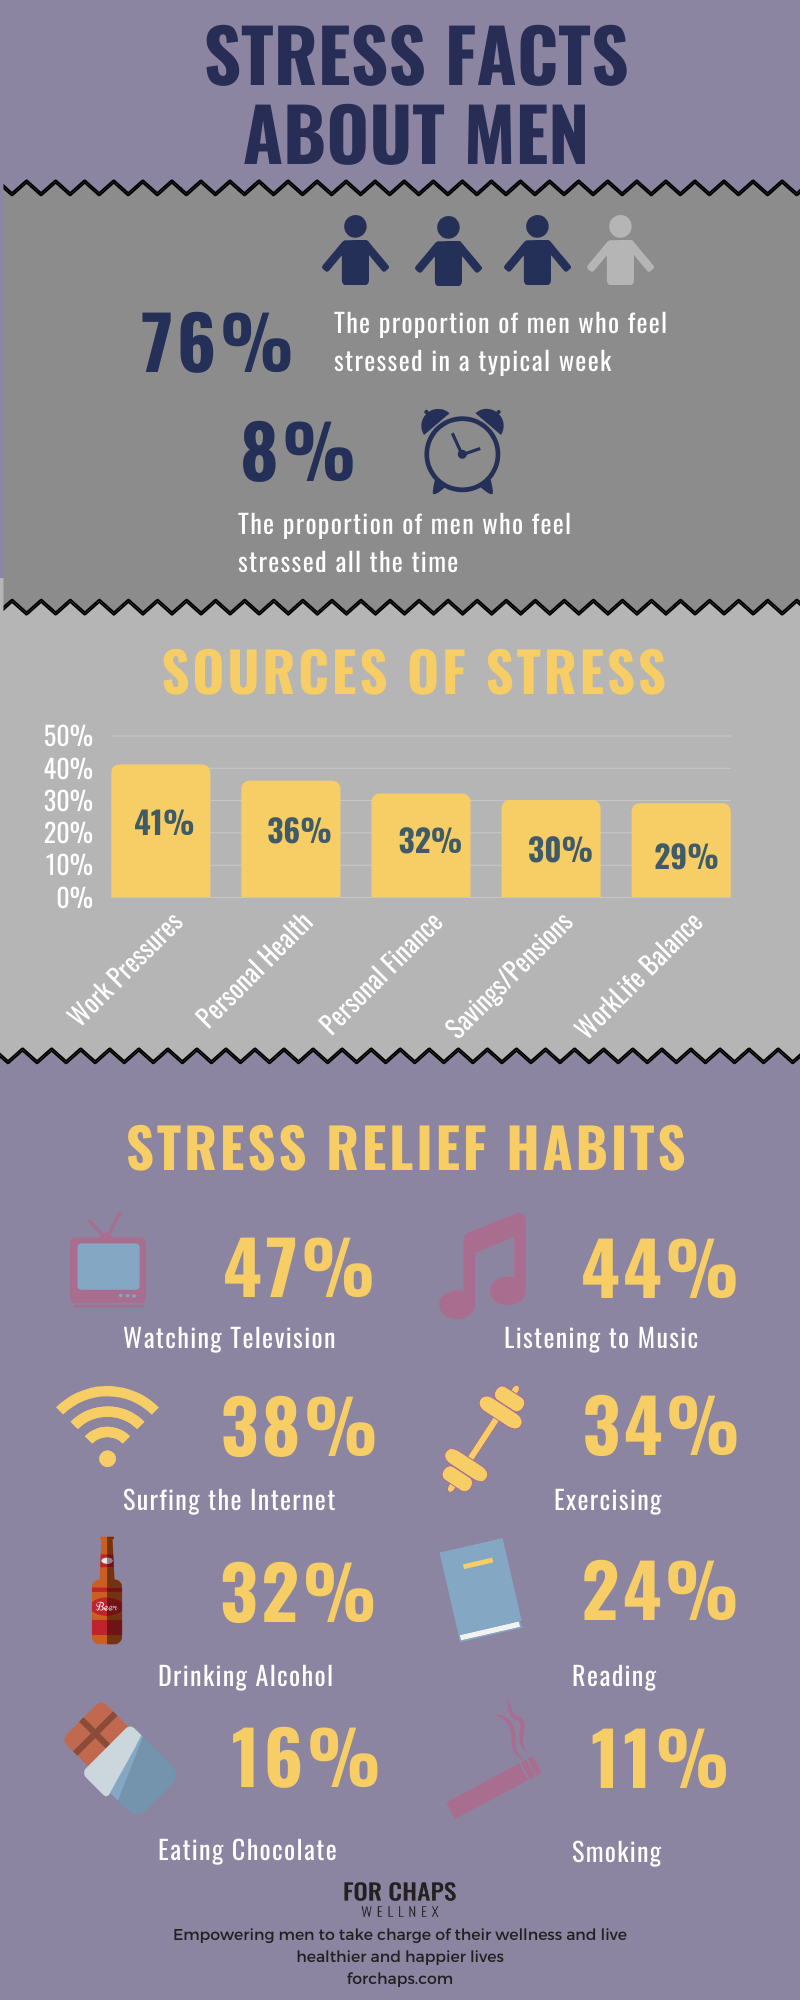 Key Stress Facts for Men